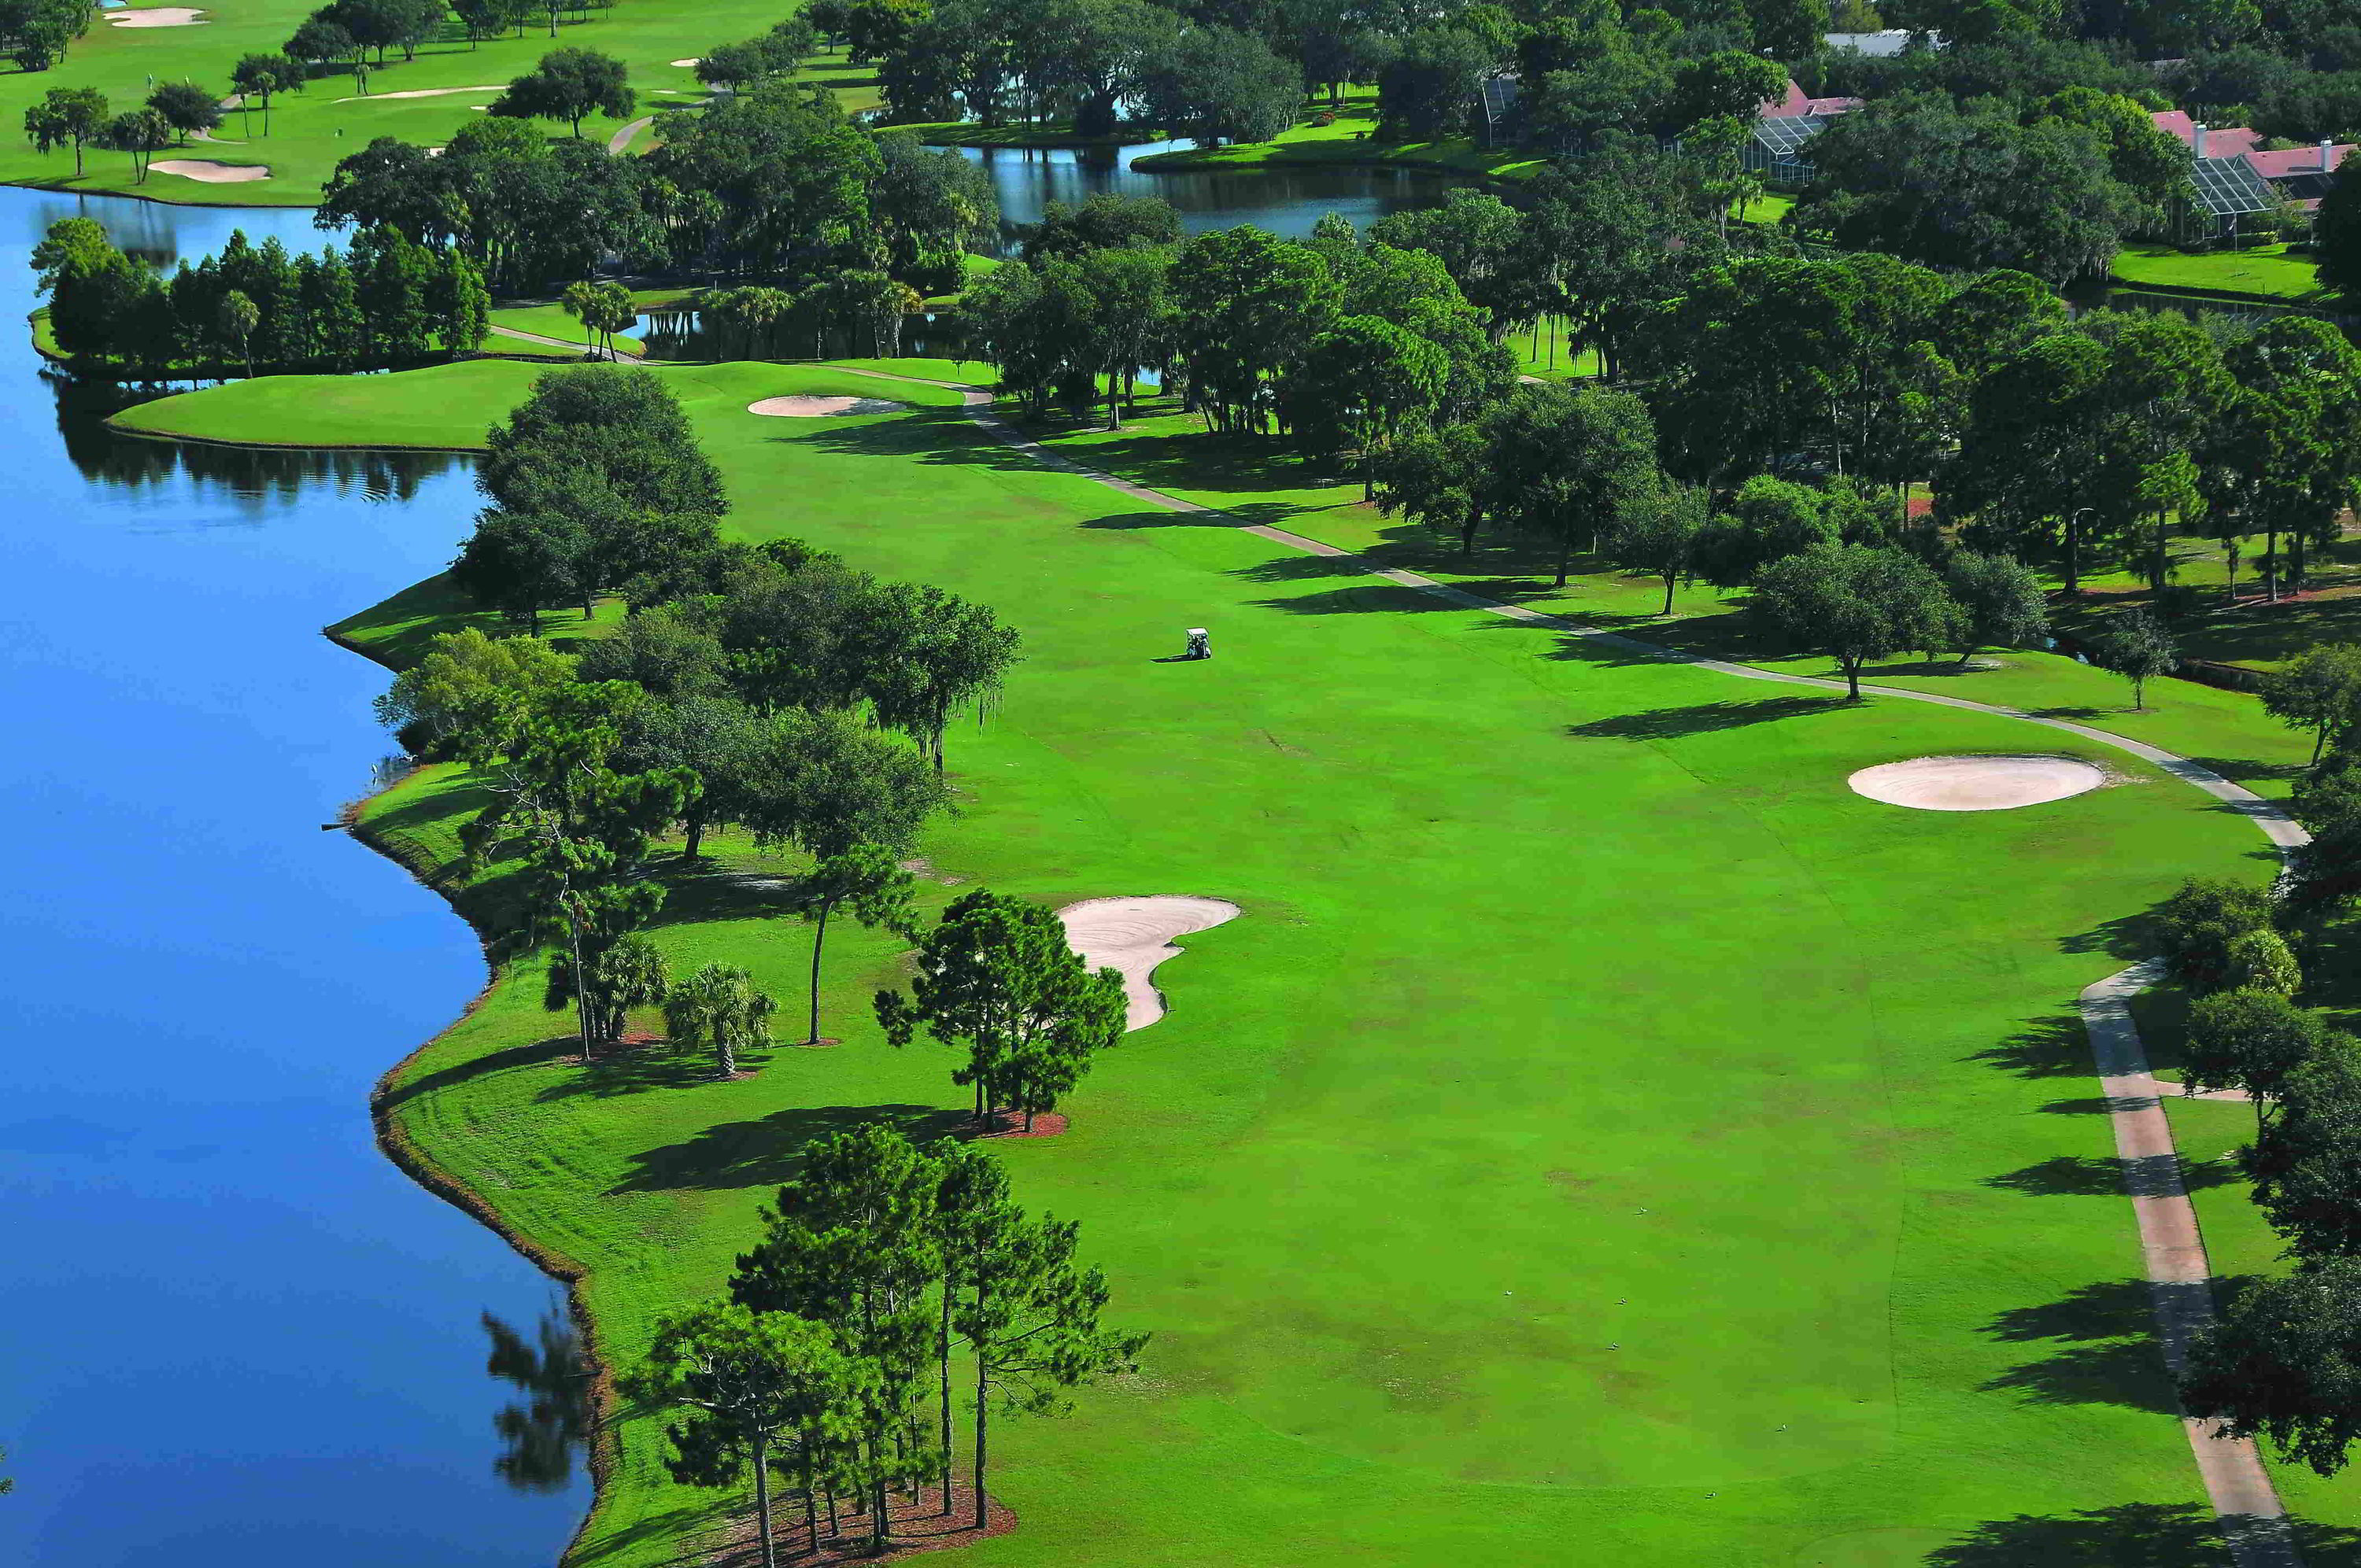 palm aire country club golf course all square golf - Palm Aire Garden